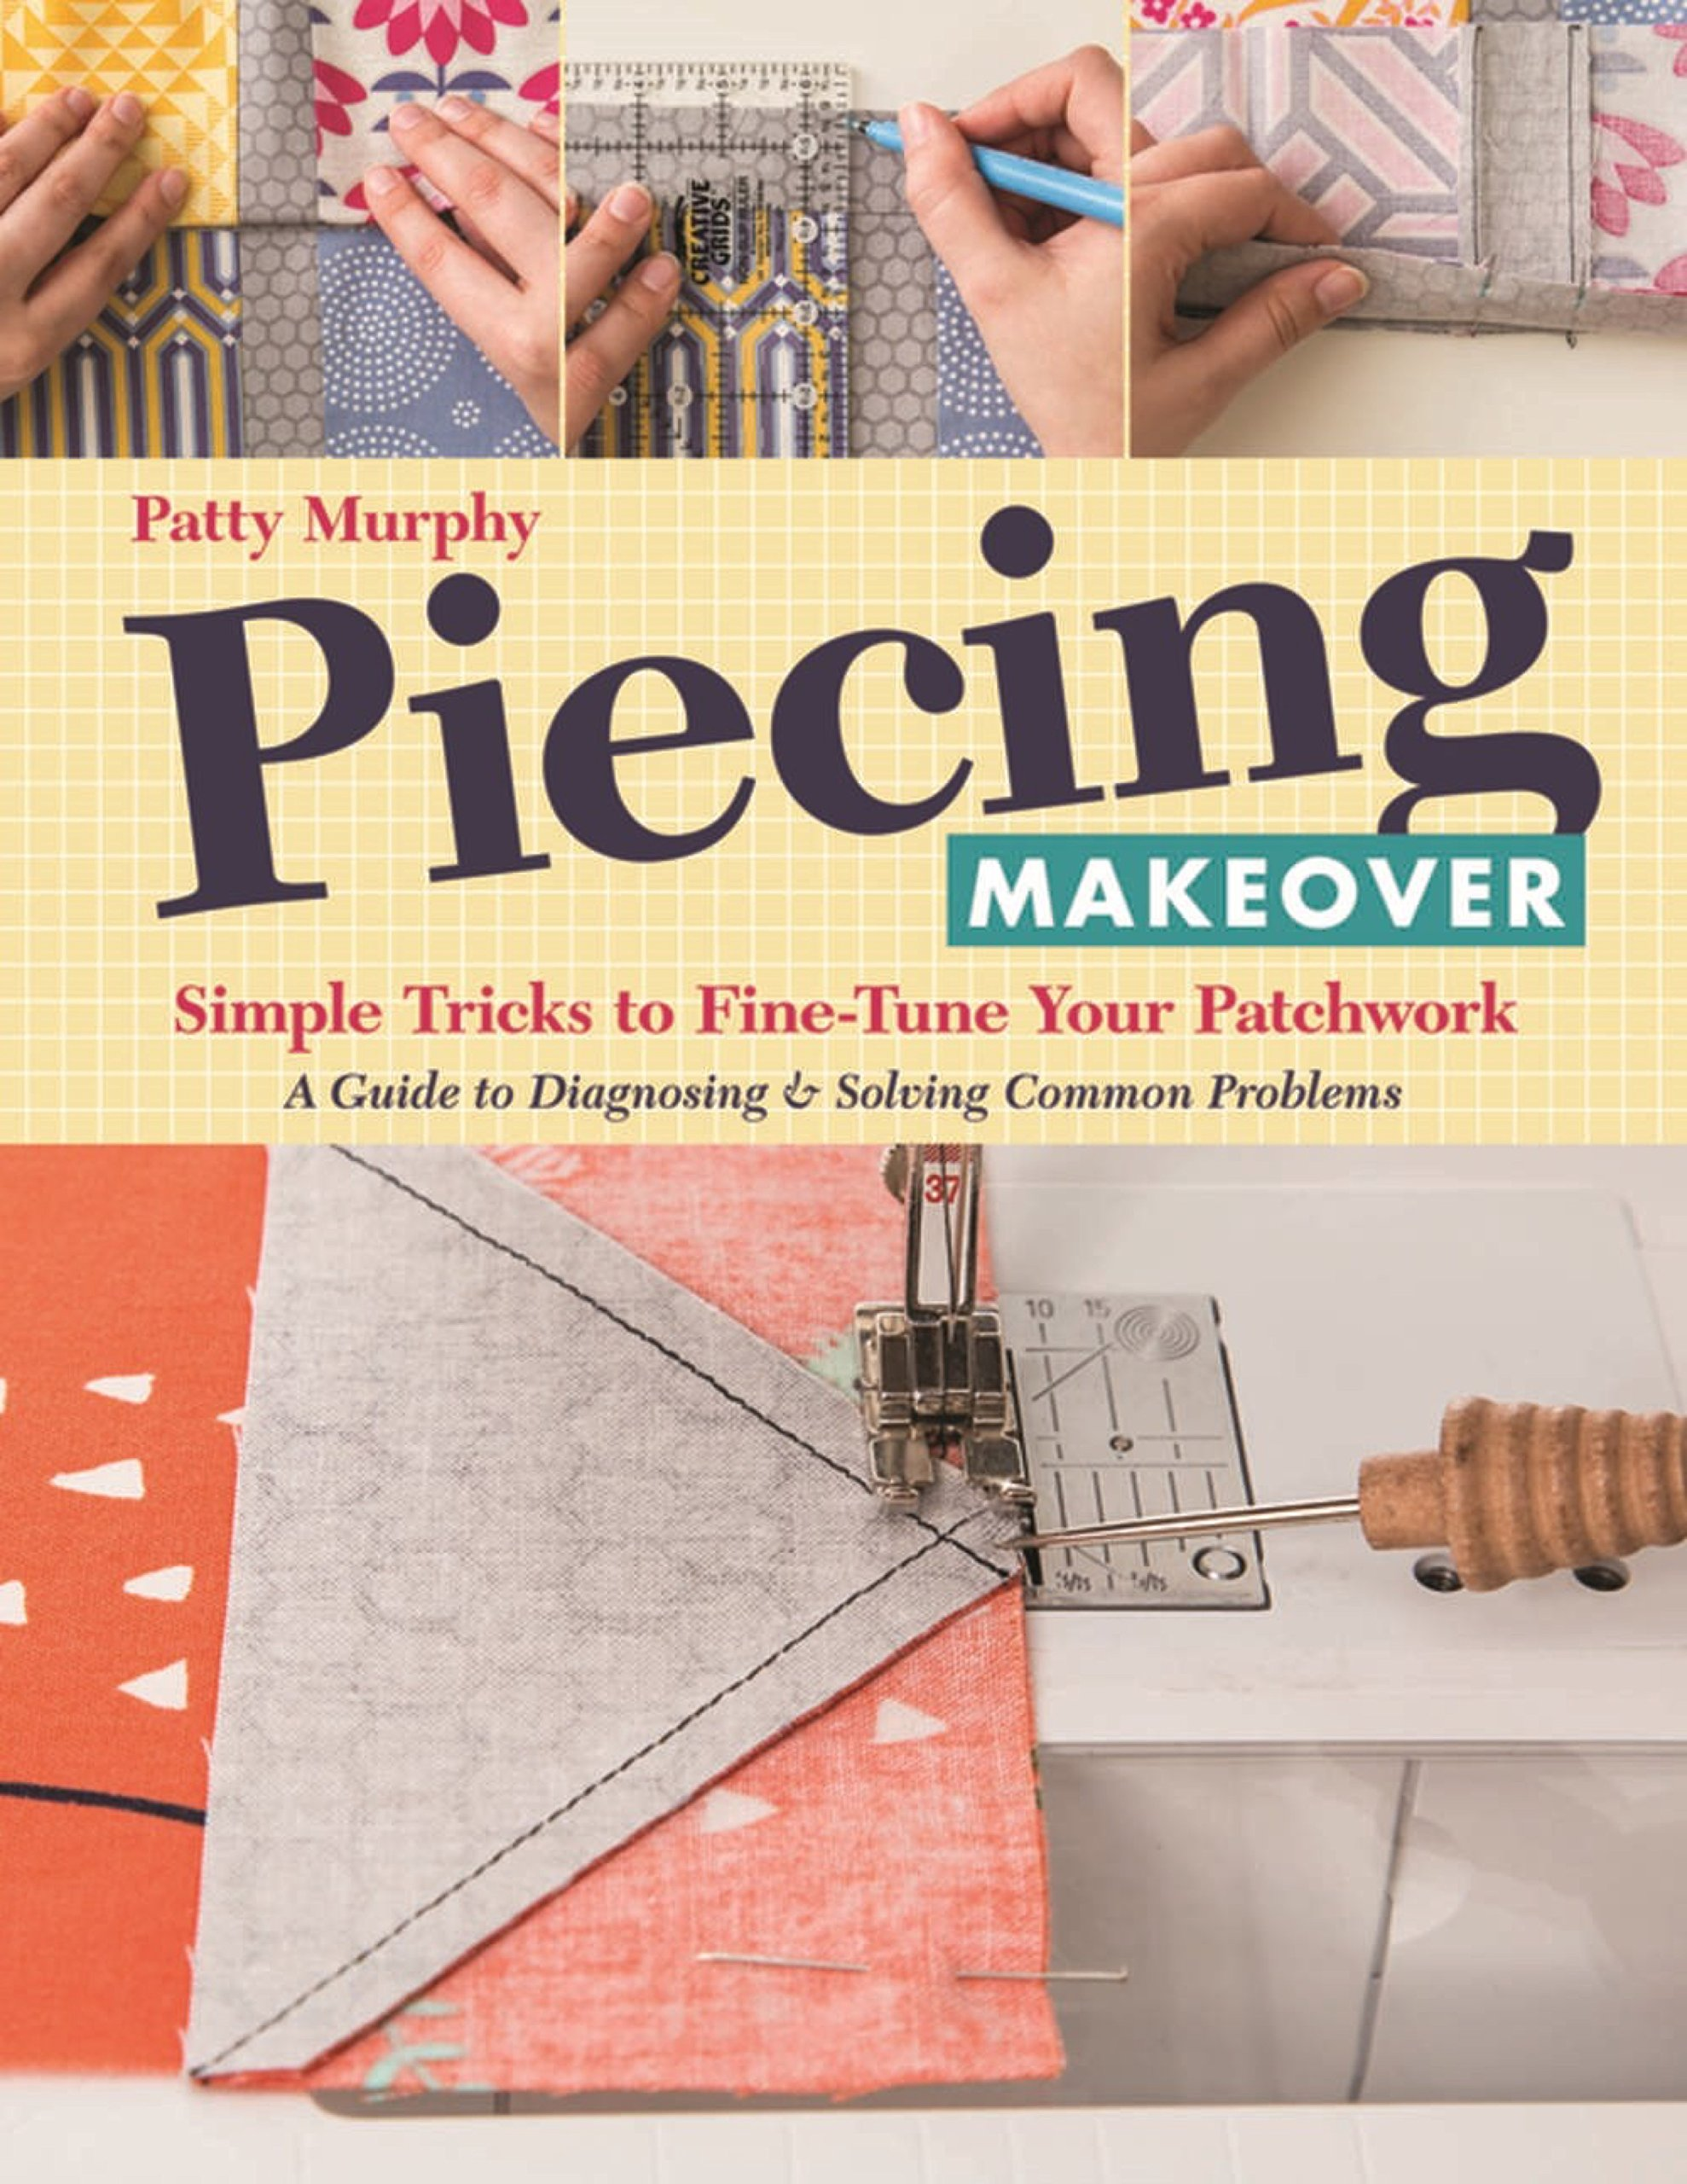 Read Online Piecing Makeover: Simple Tricks to Fine-Tune Your Patchwork • A Guide to Diagnosing & Solving Common Problems PDF